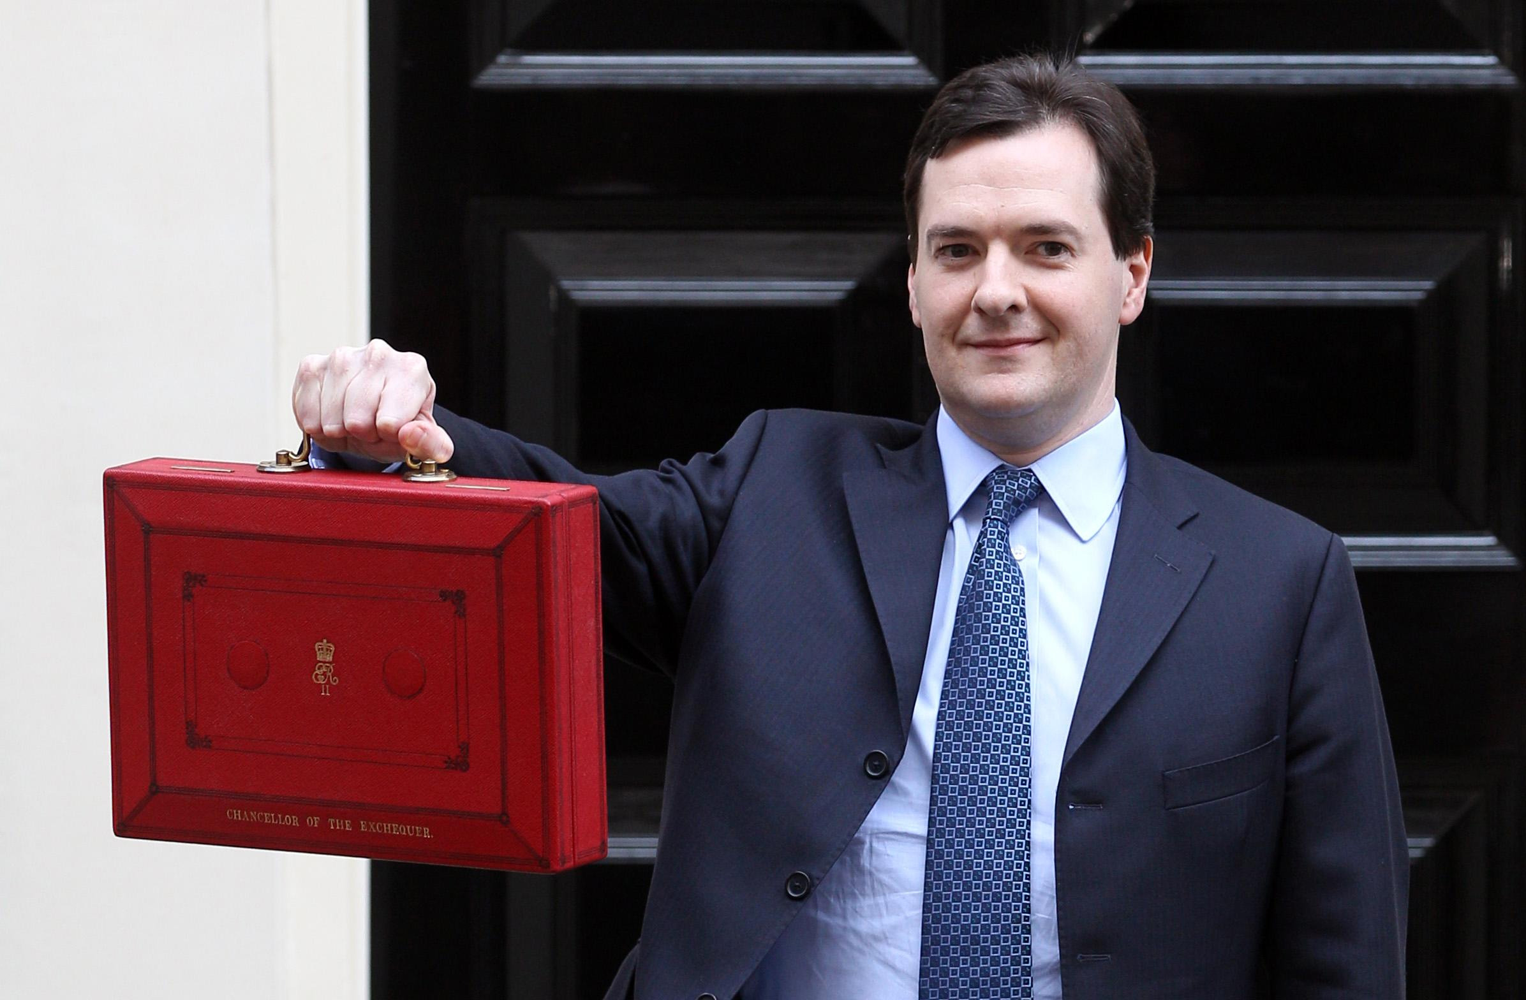 Budget2012: Osborne plans 'radical change' to taxation of small businesses